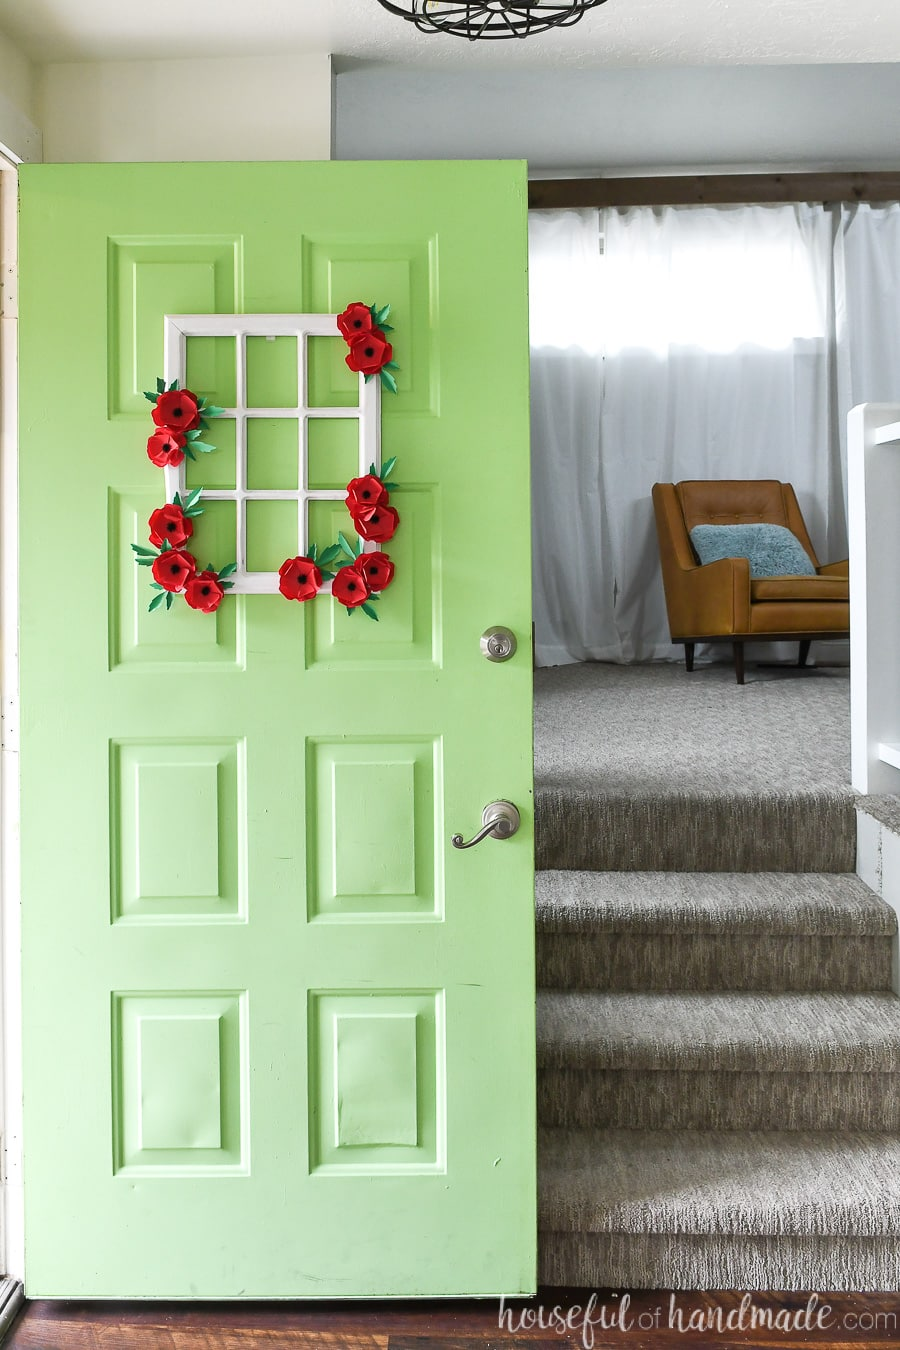 Green door with window frame wreath on it, decorated with paper poppy flowers, opening up to the house.